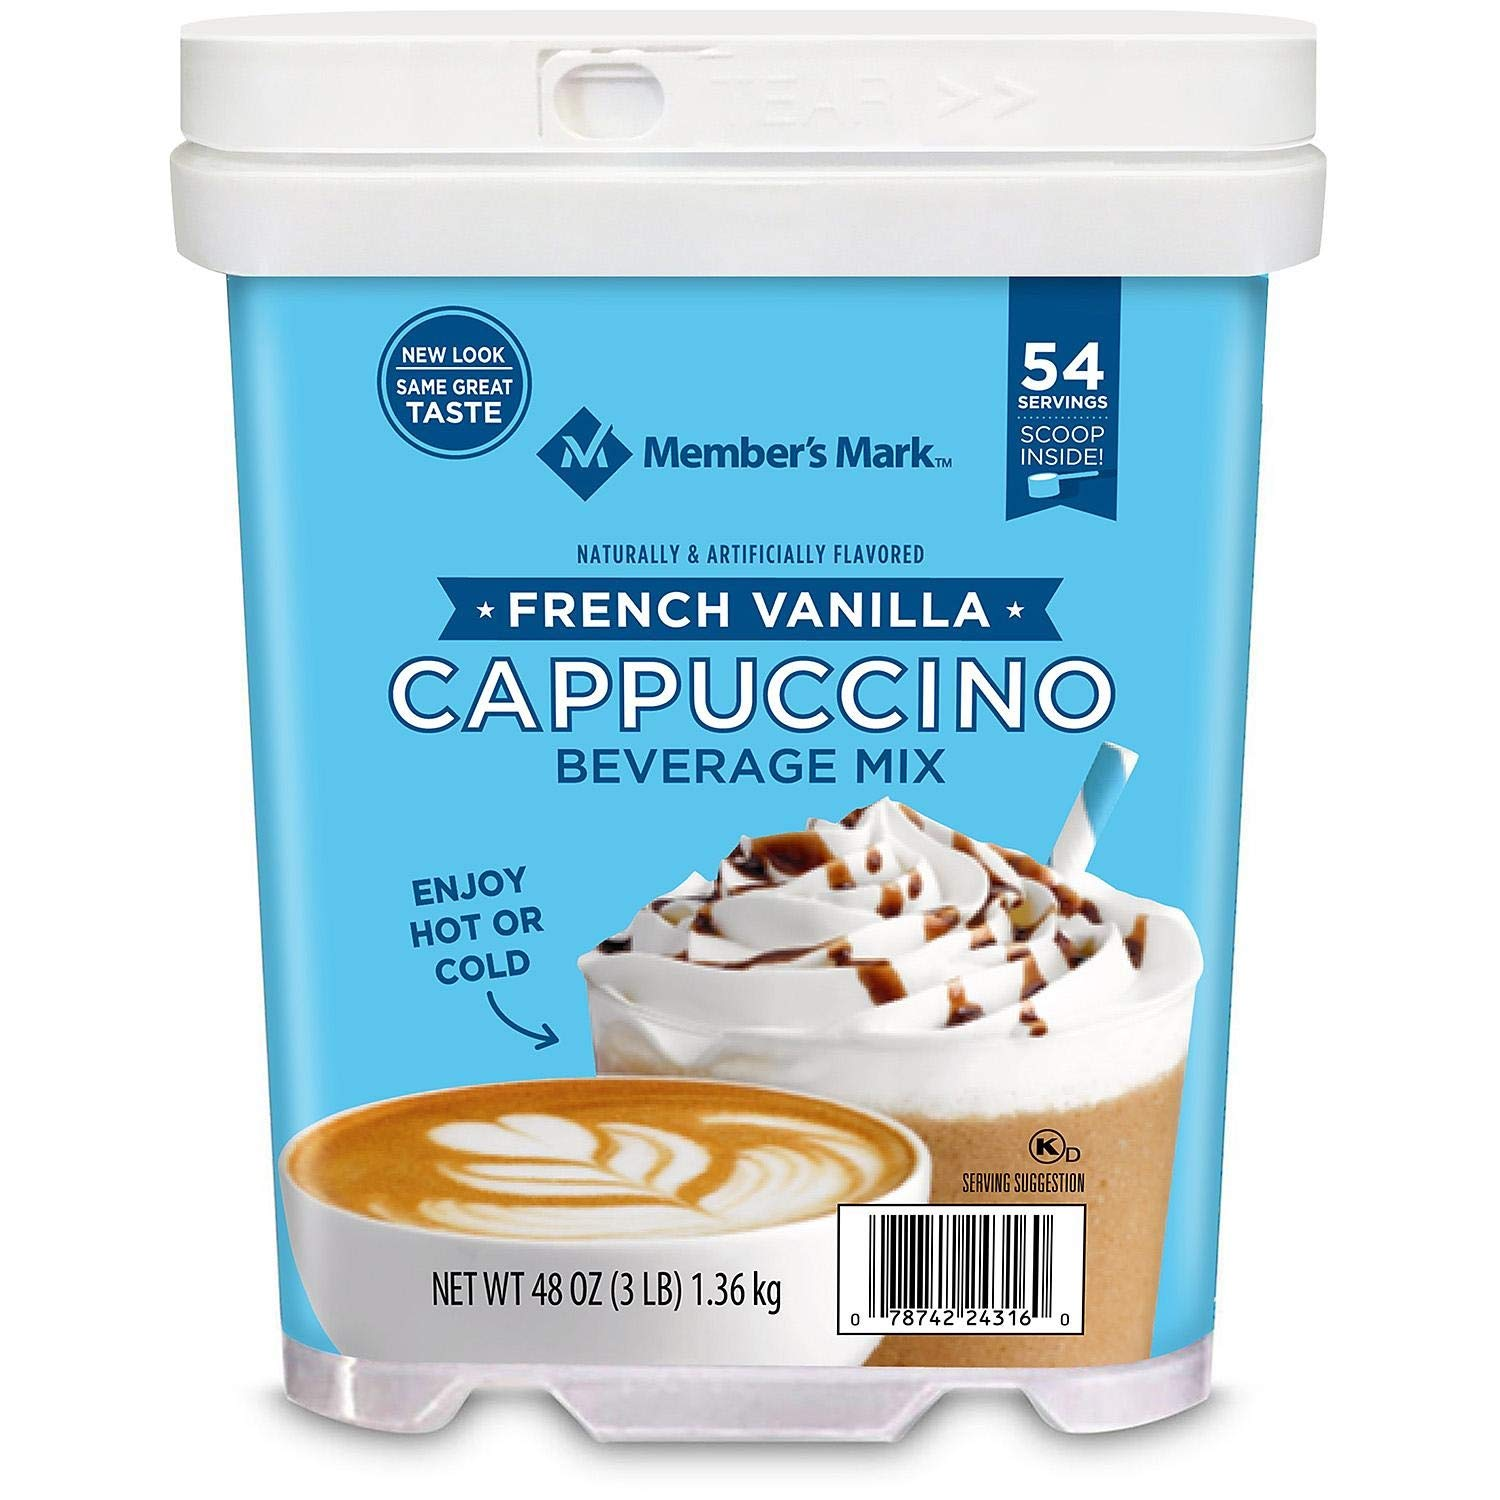 Daily Chef French Vanilla Cappuccino 48 oz.(54 Servings) (Pack of 3)